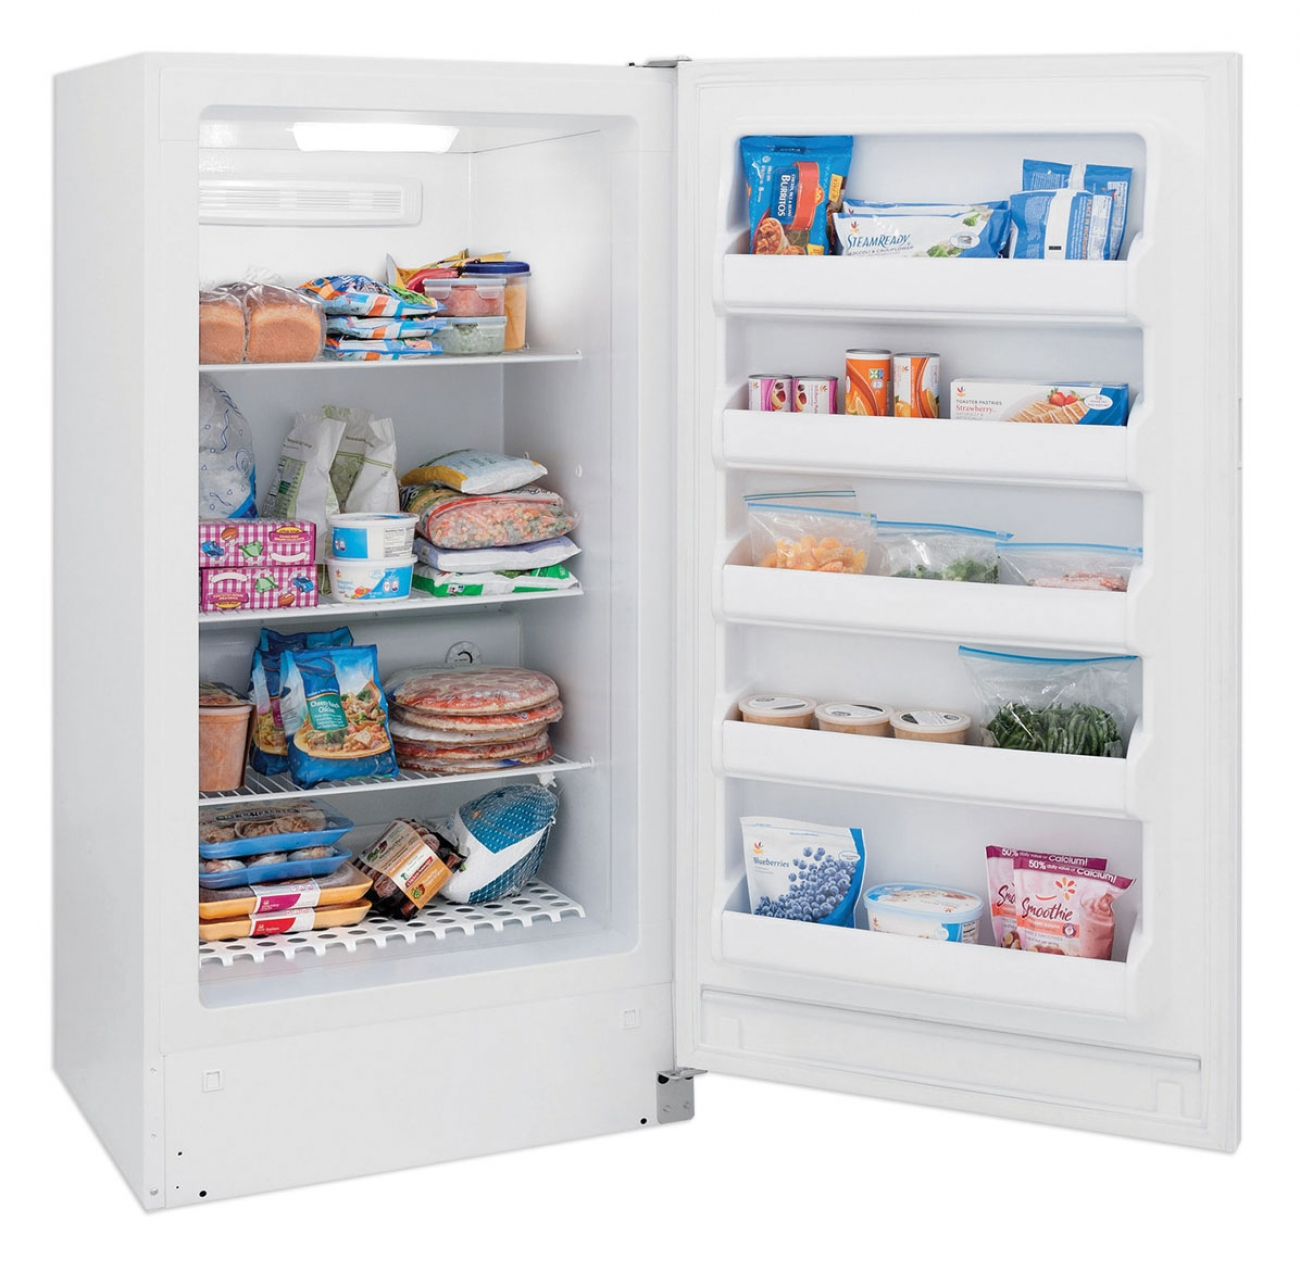 Fridgidaire 17 Cu.Ft. Upright Freezer